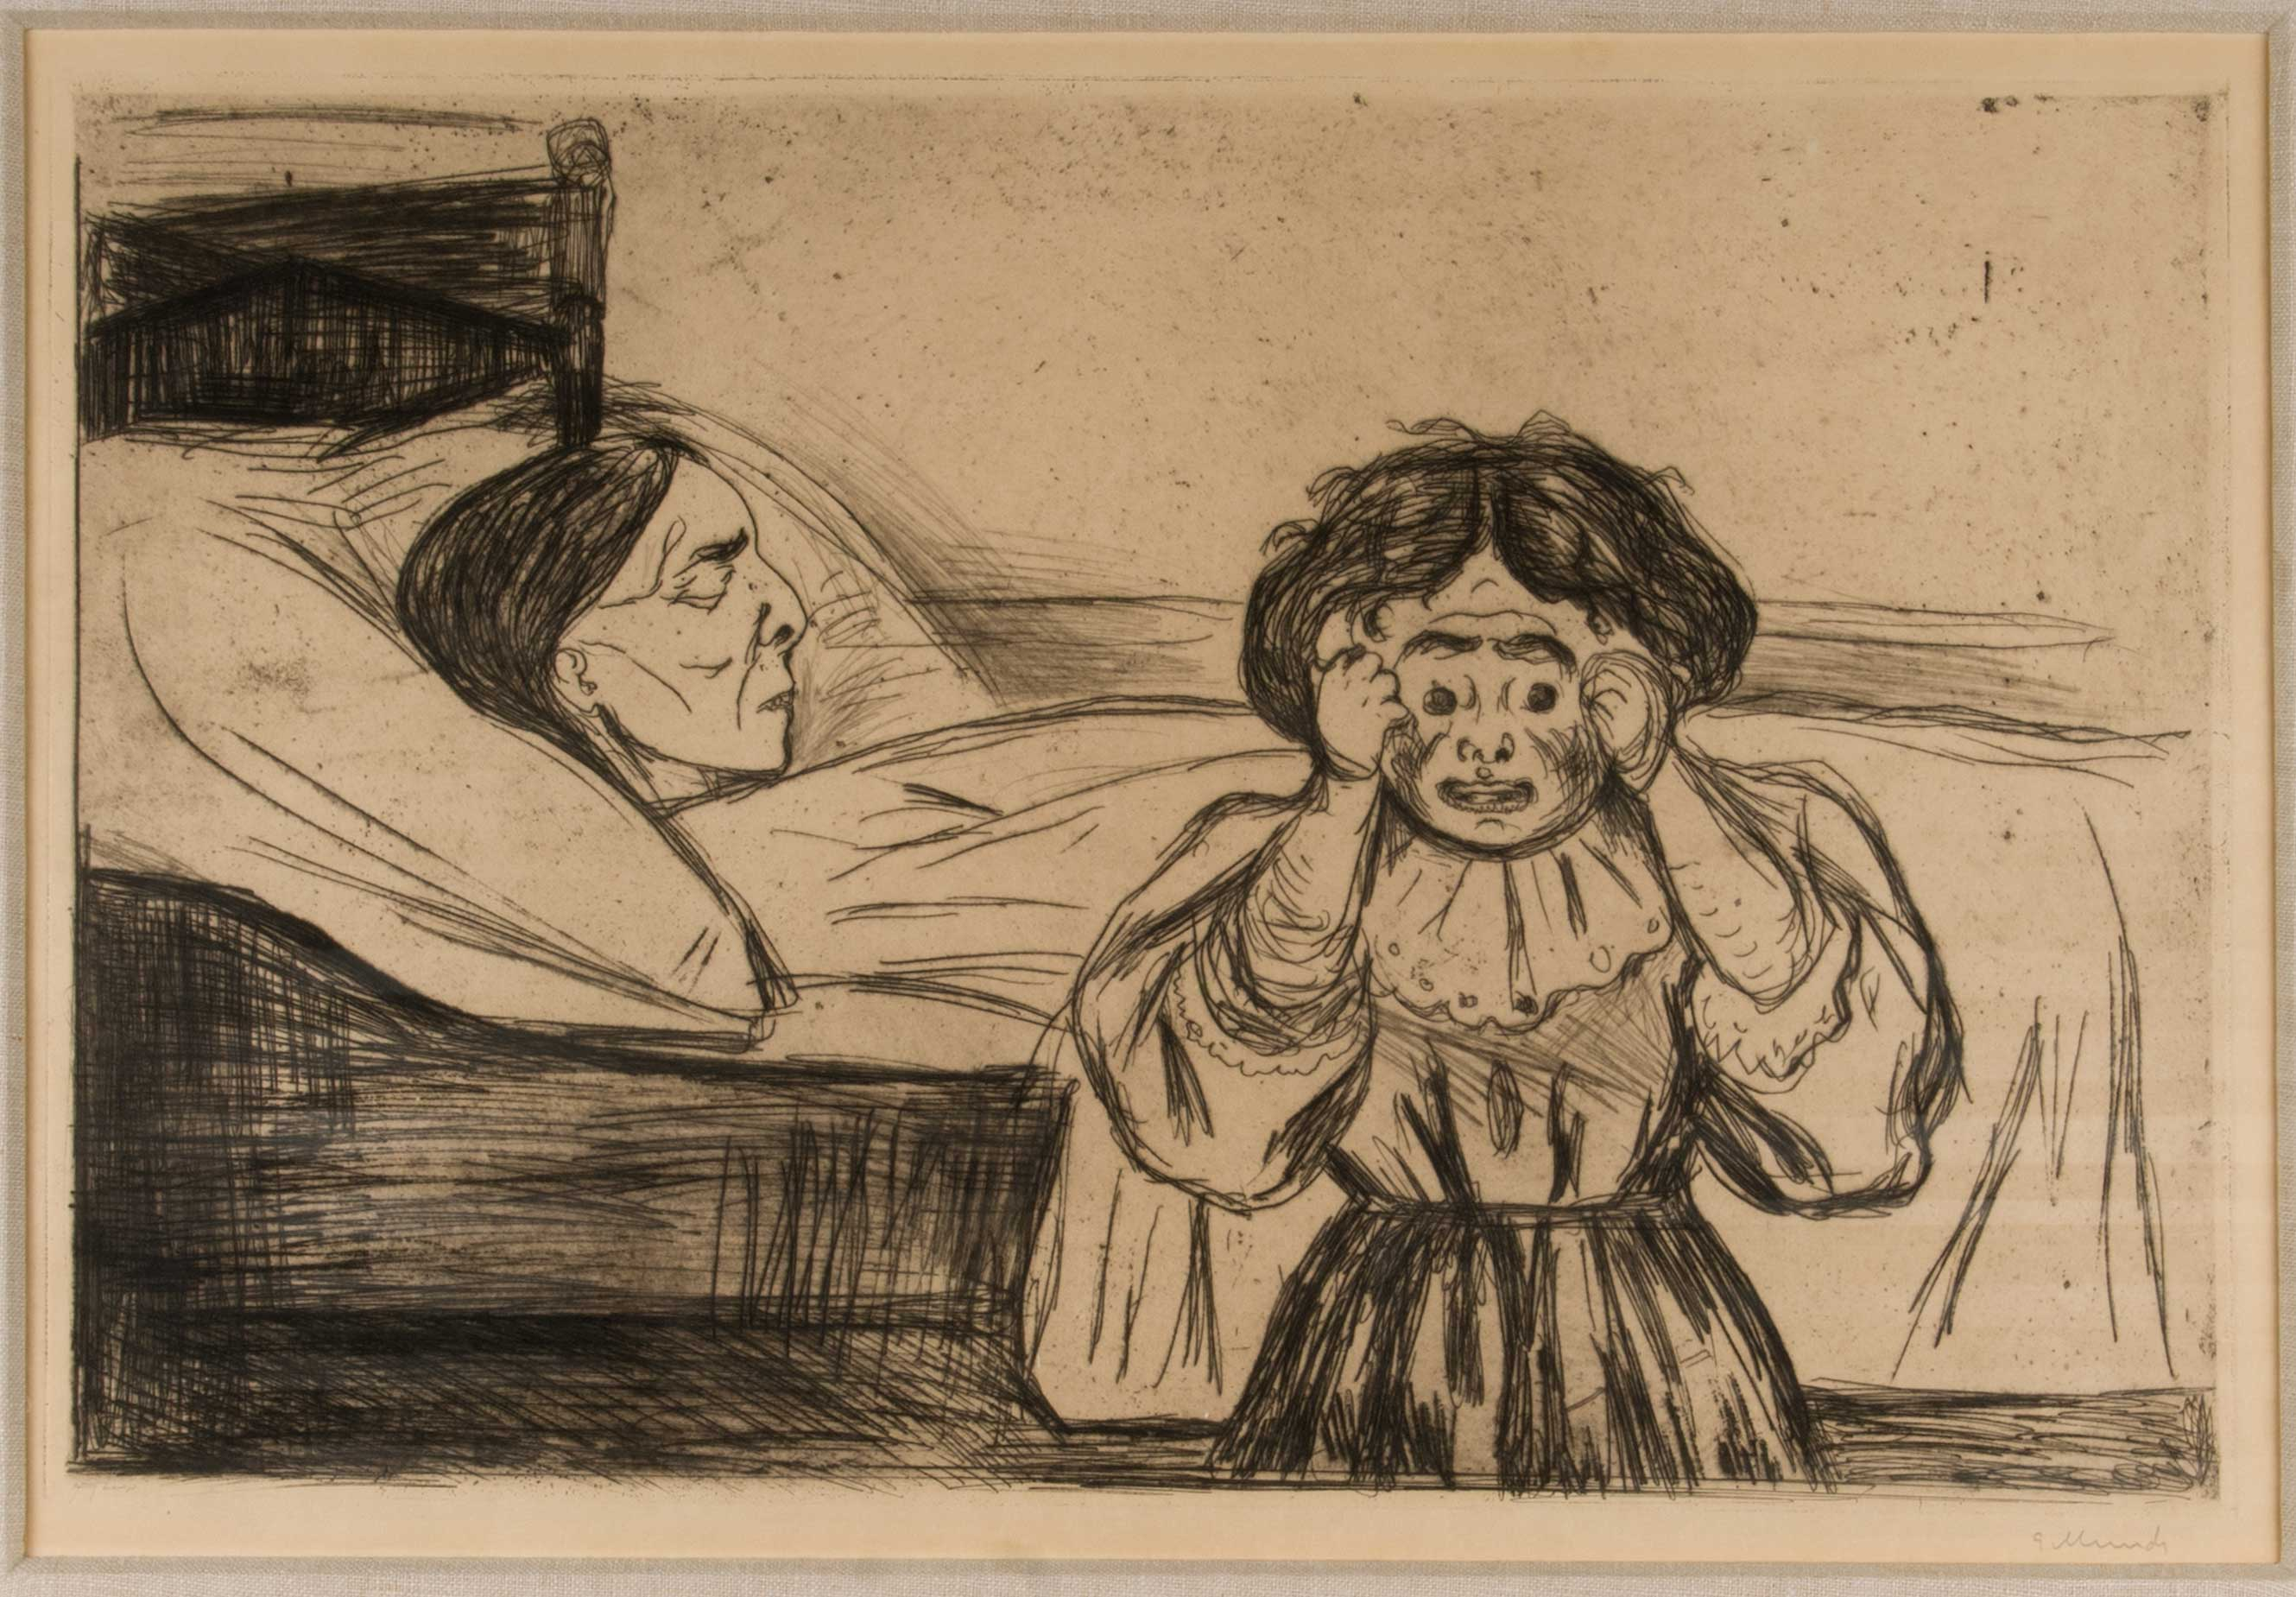 Edvard Munch (Norwegian, 1863–1944), The Dead Mother and Her Child, 1901, Etching and drypoint, 12 ¼ x 19 inches